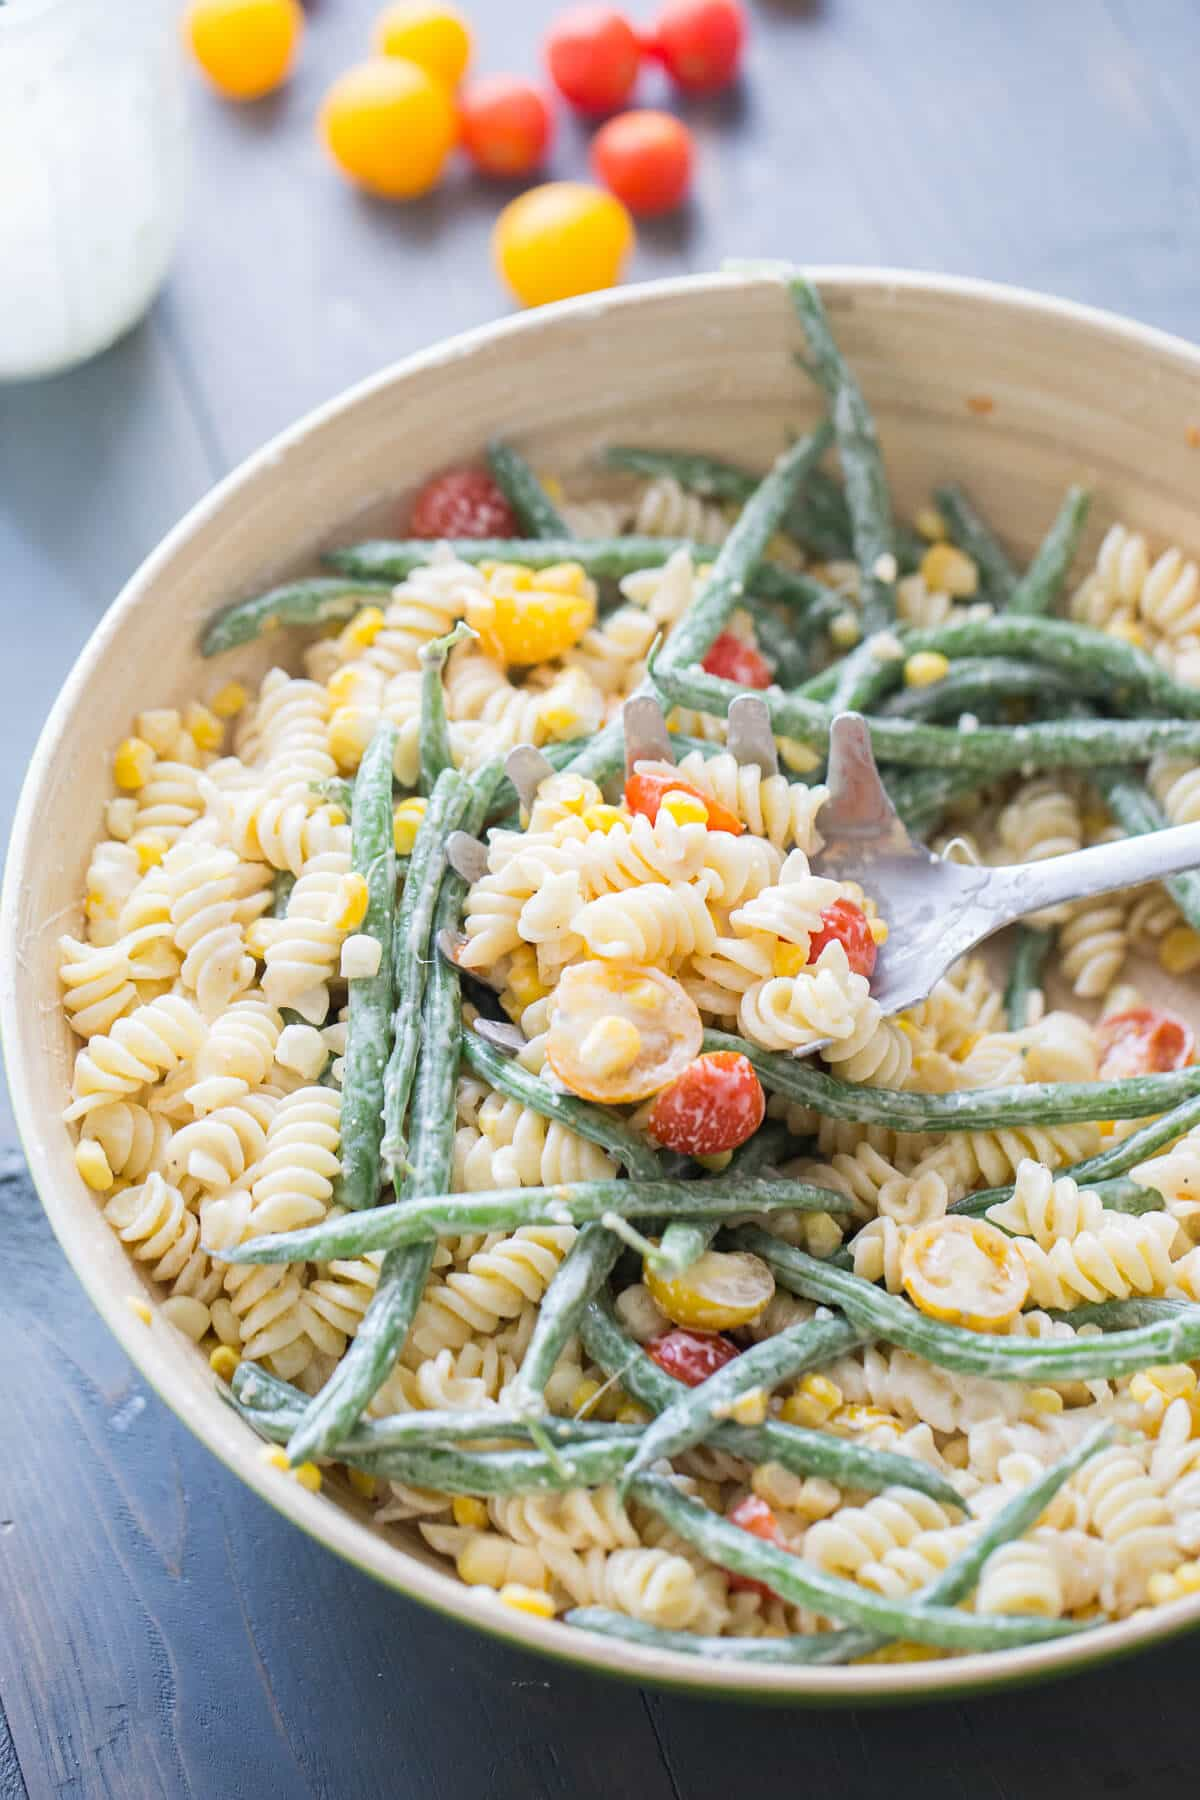 A creamy vegetable pasta salad that will be perfect for your summer entertaining!